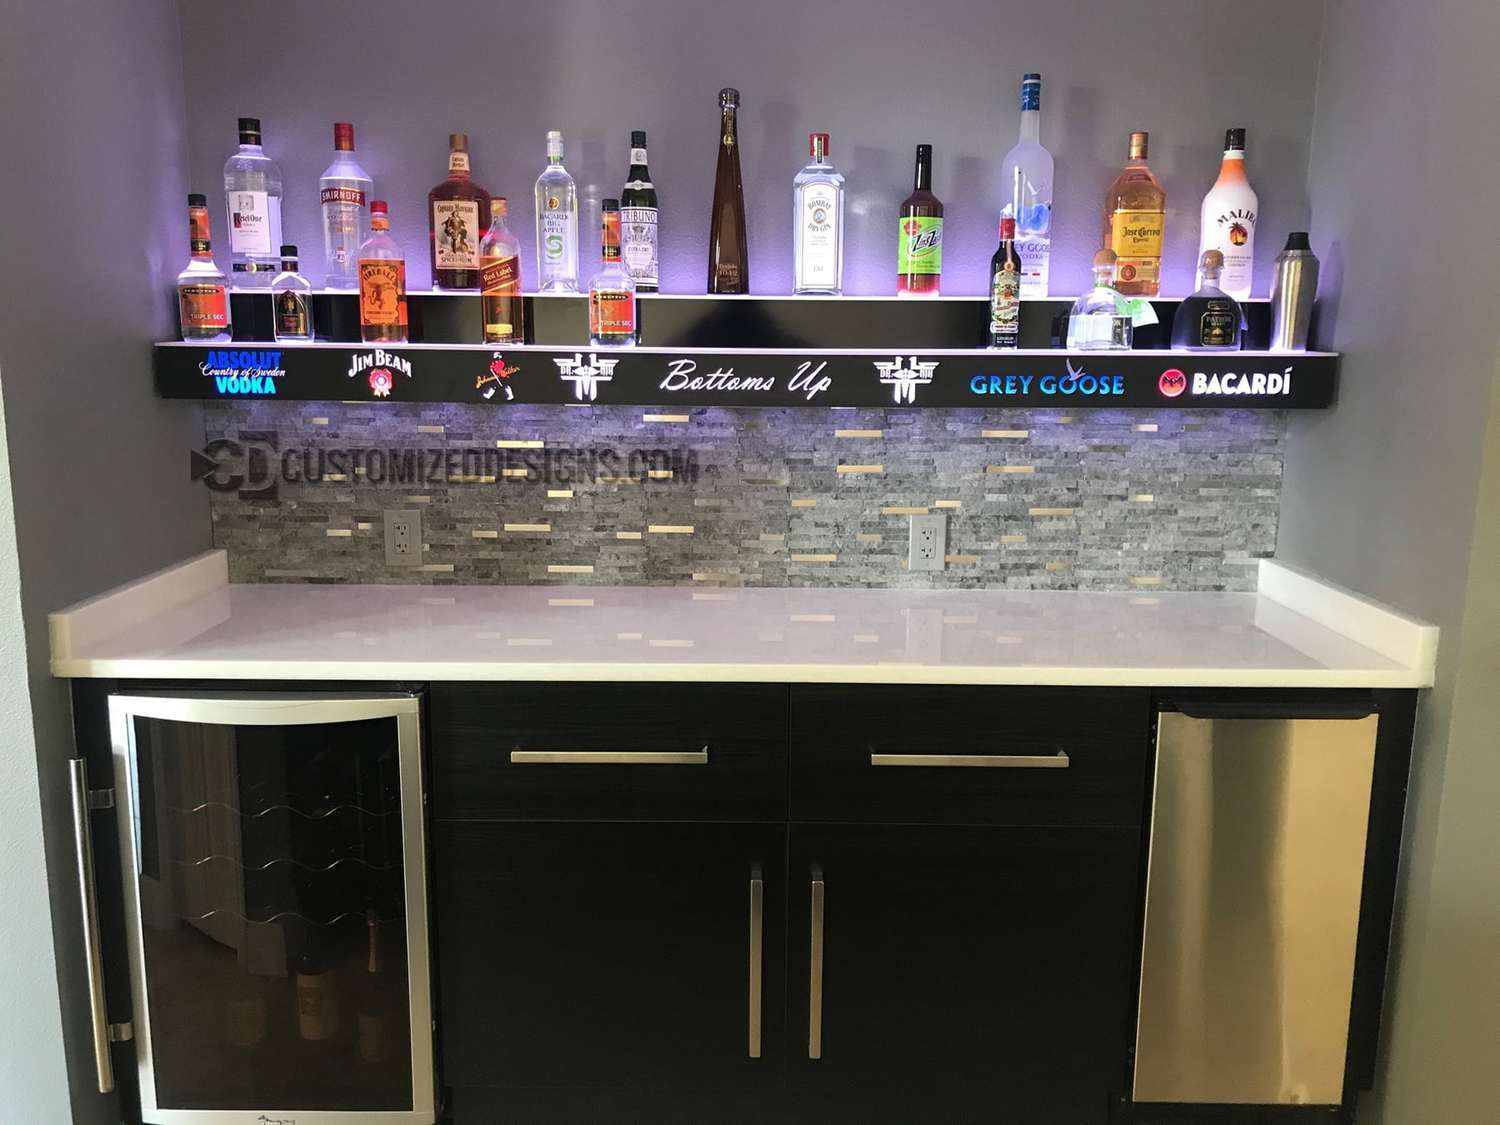 Wall Mounted 2 Tier Bar Display W Liquor Logos Customized Designs Bar Displays Wall Bar Home Bar